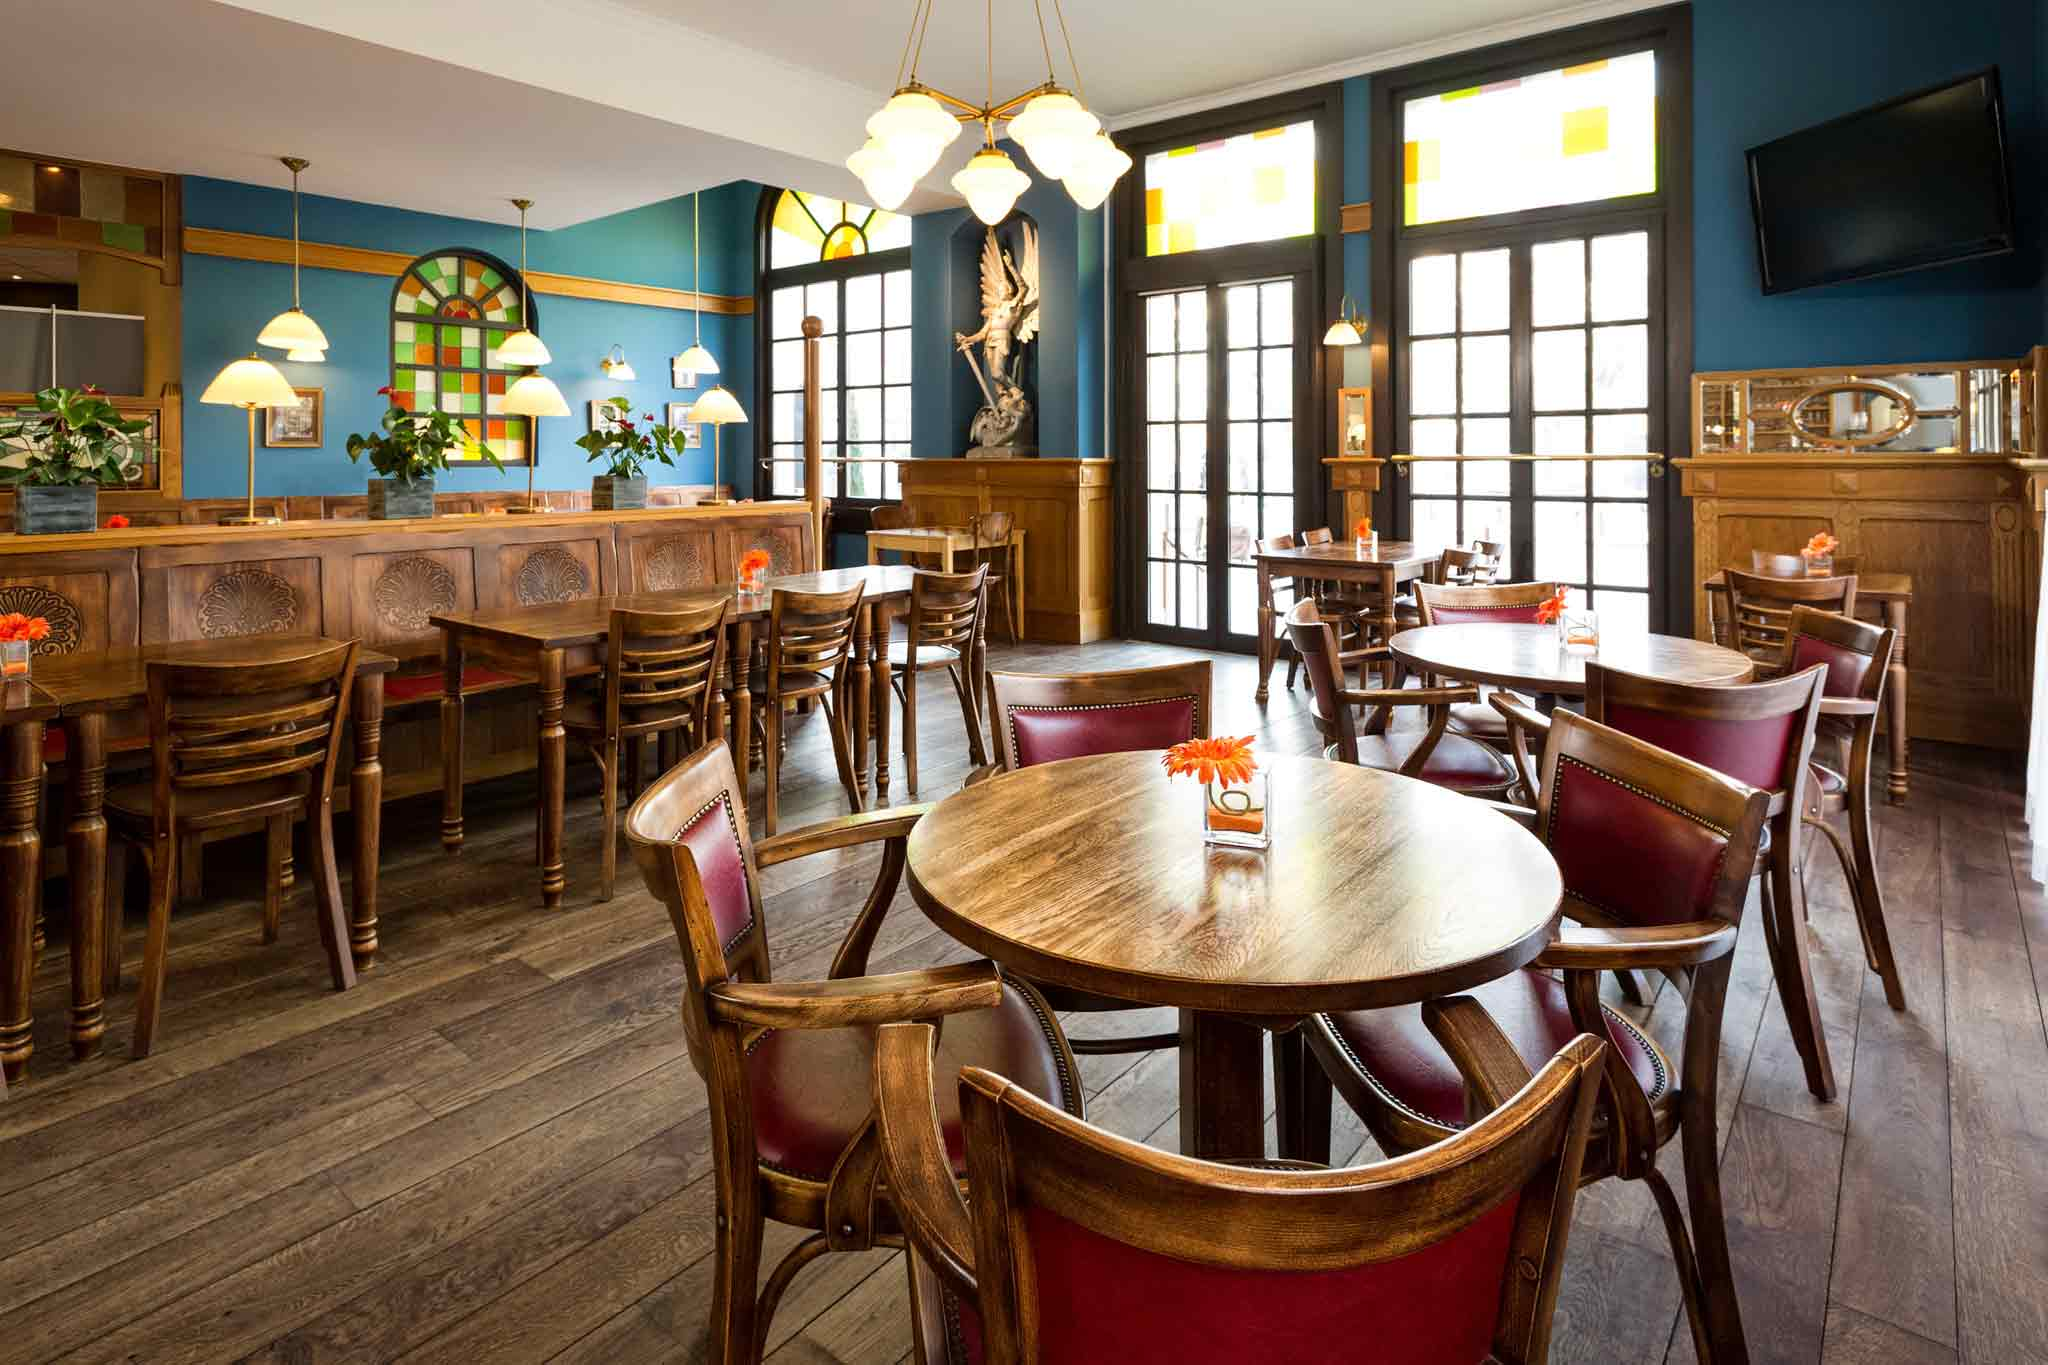 Spot cafe bruxelles leicester speed dating to meet and gather with other.